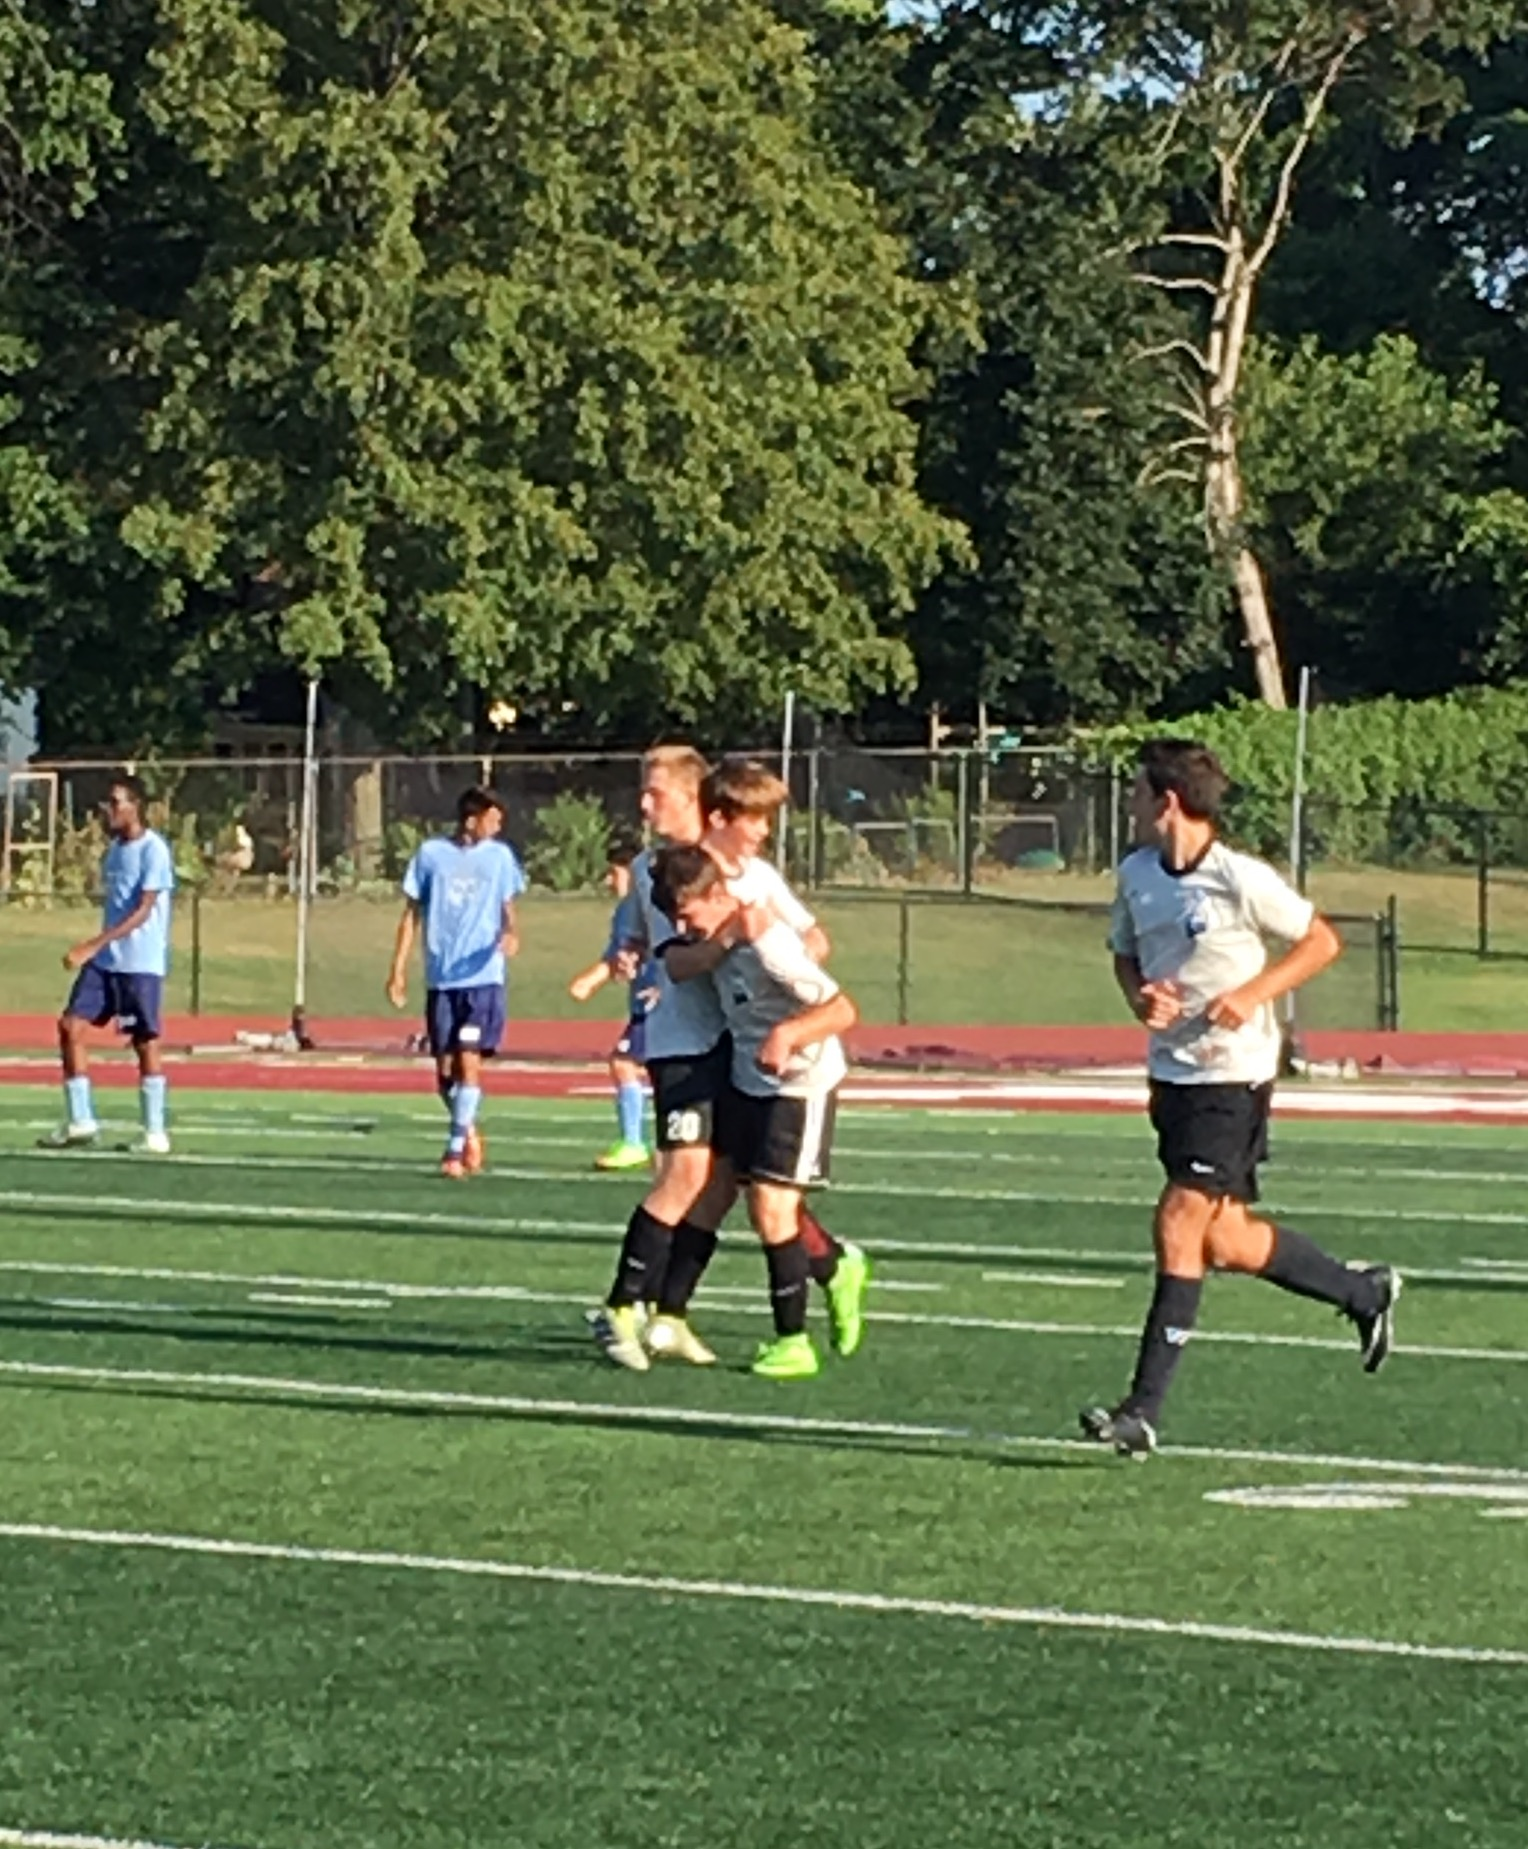 Conor McKenna gets congratulated after his goal in the Benedictine scrimmage.